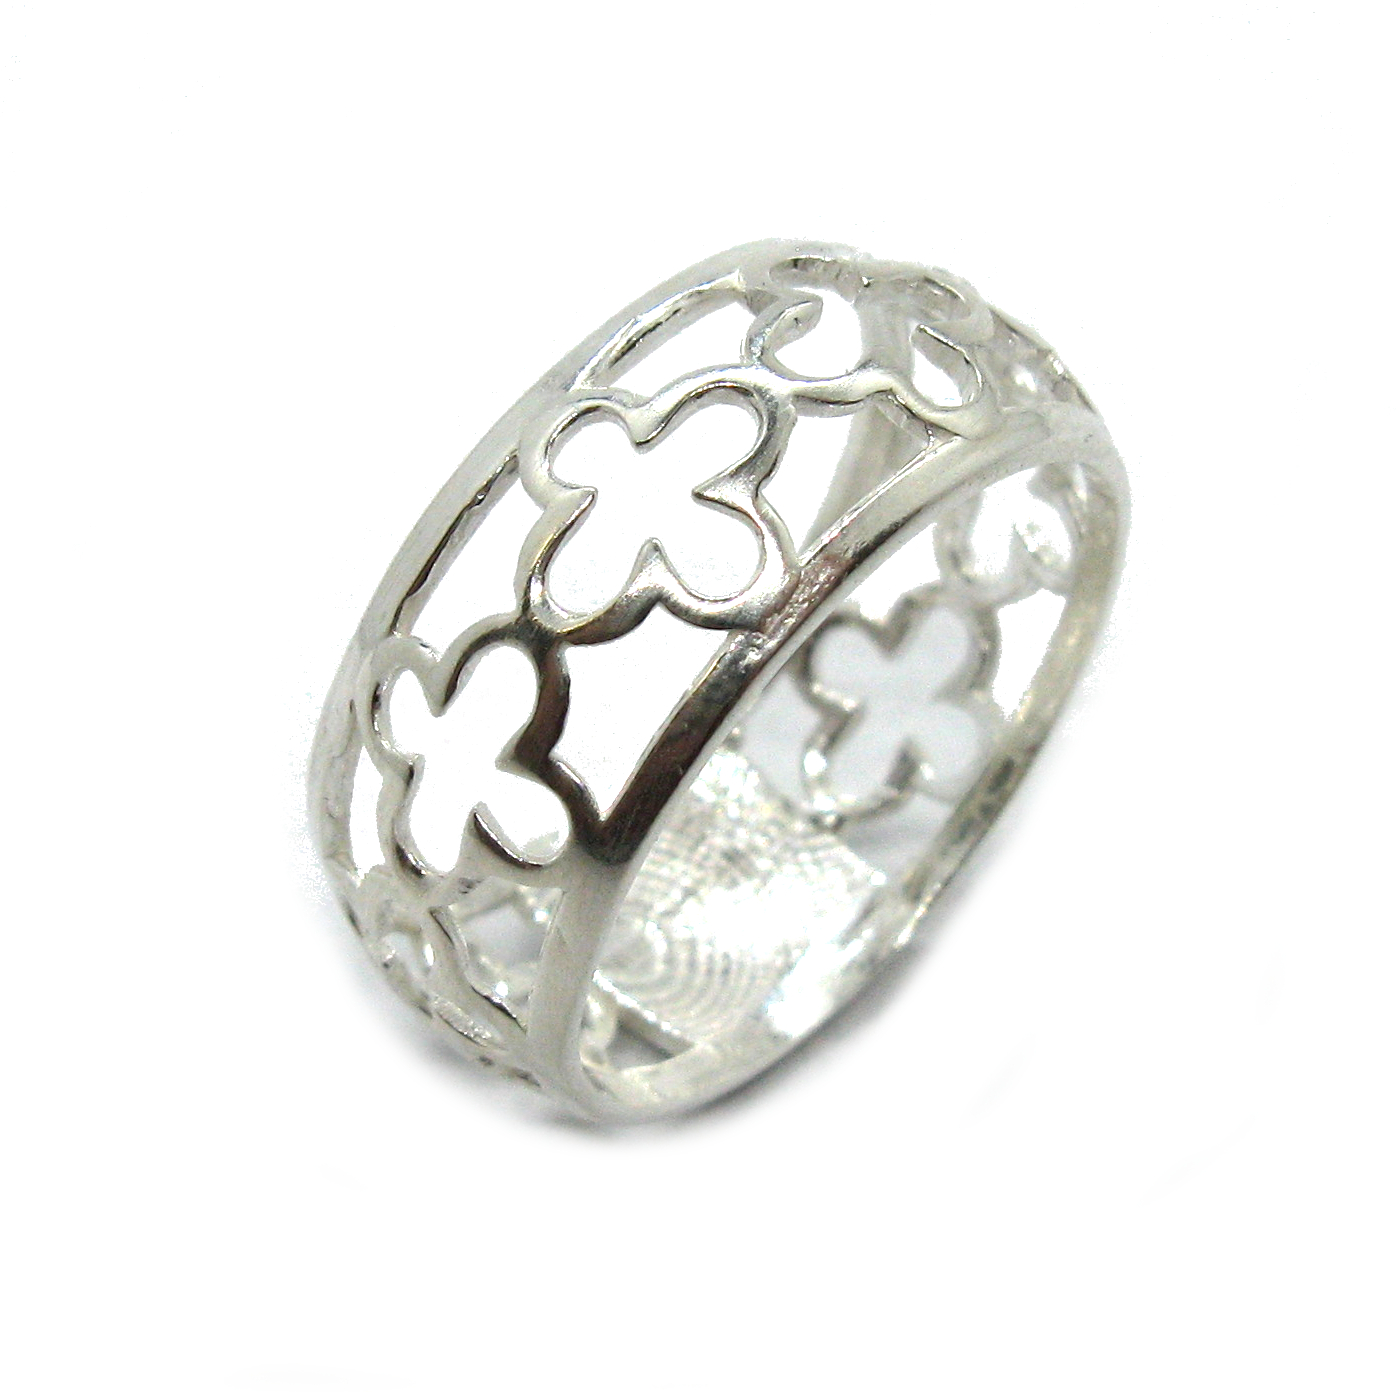 Silver ring - R002032